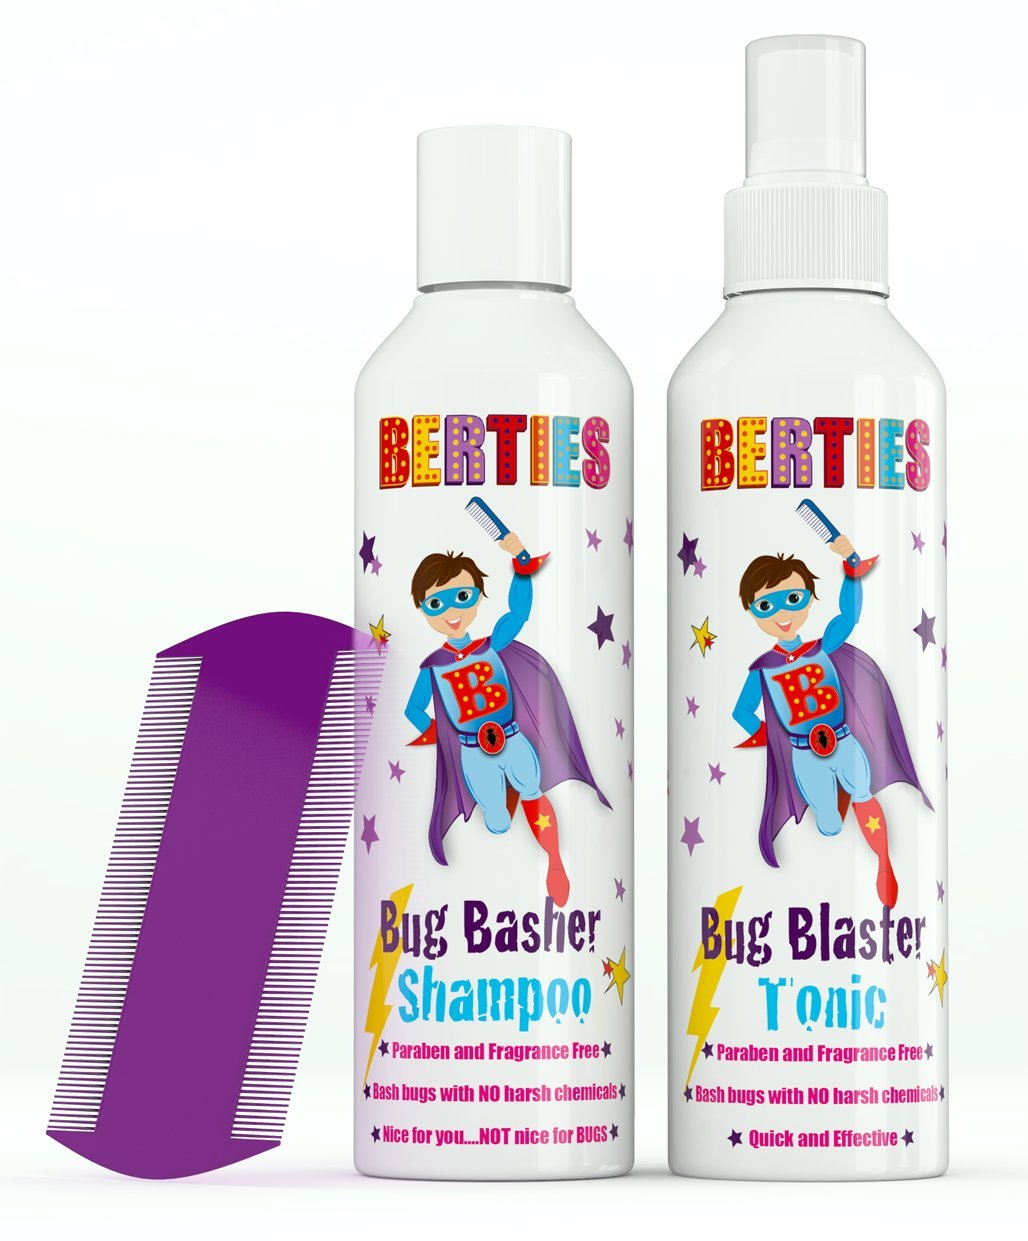 Bertie's Bug Basher - Natural Head Lice Tonic and Shampoo For Children - Head Lice Comb Included Bug Basher Ltd